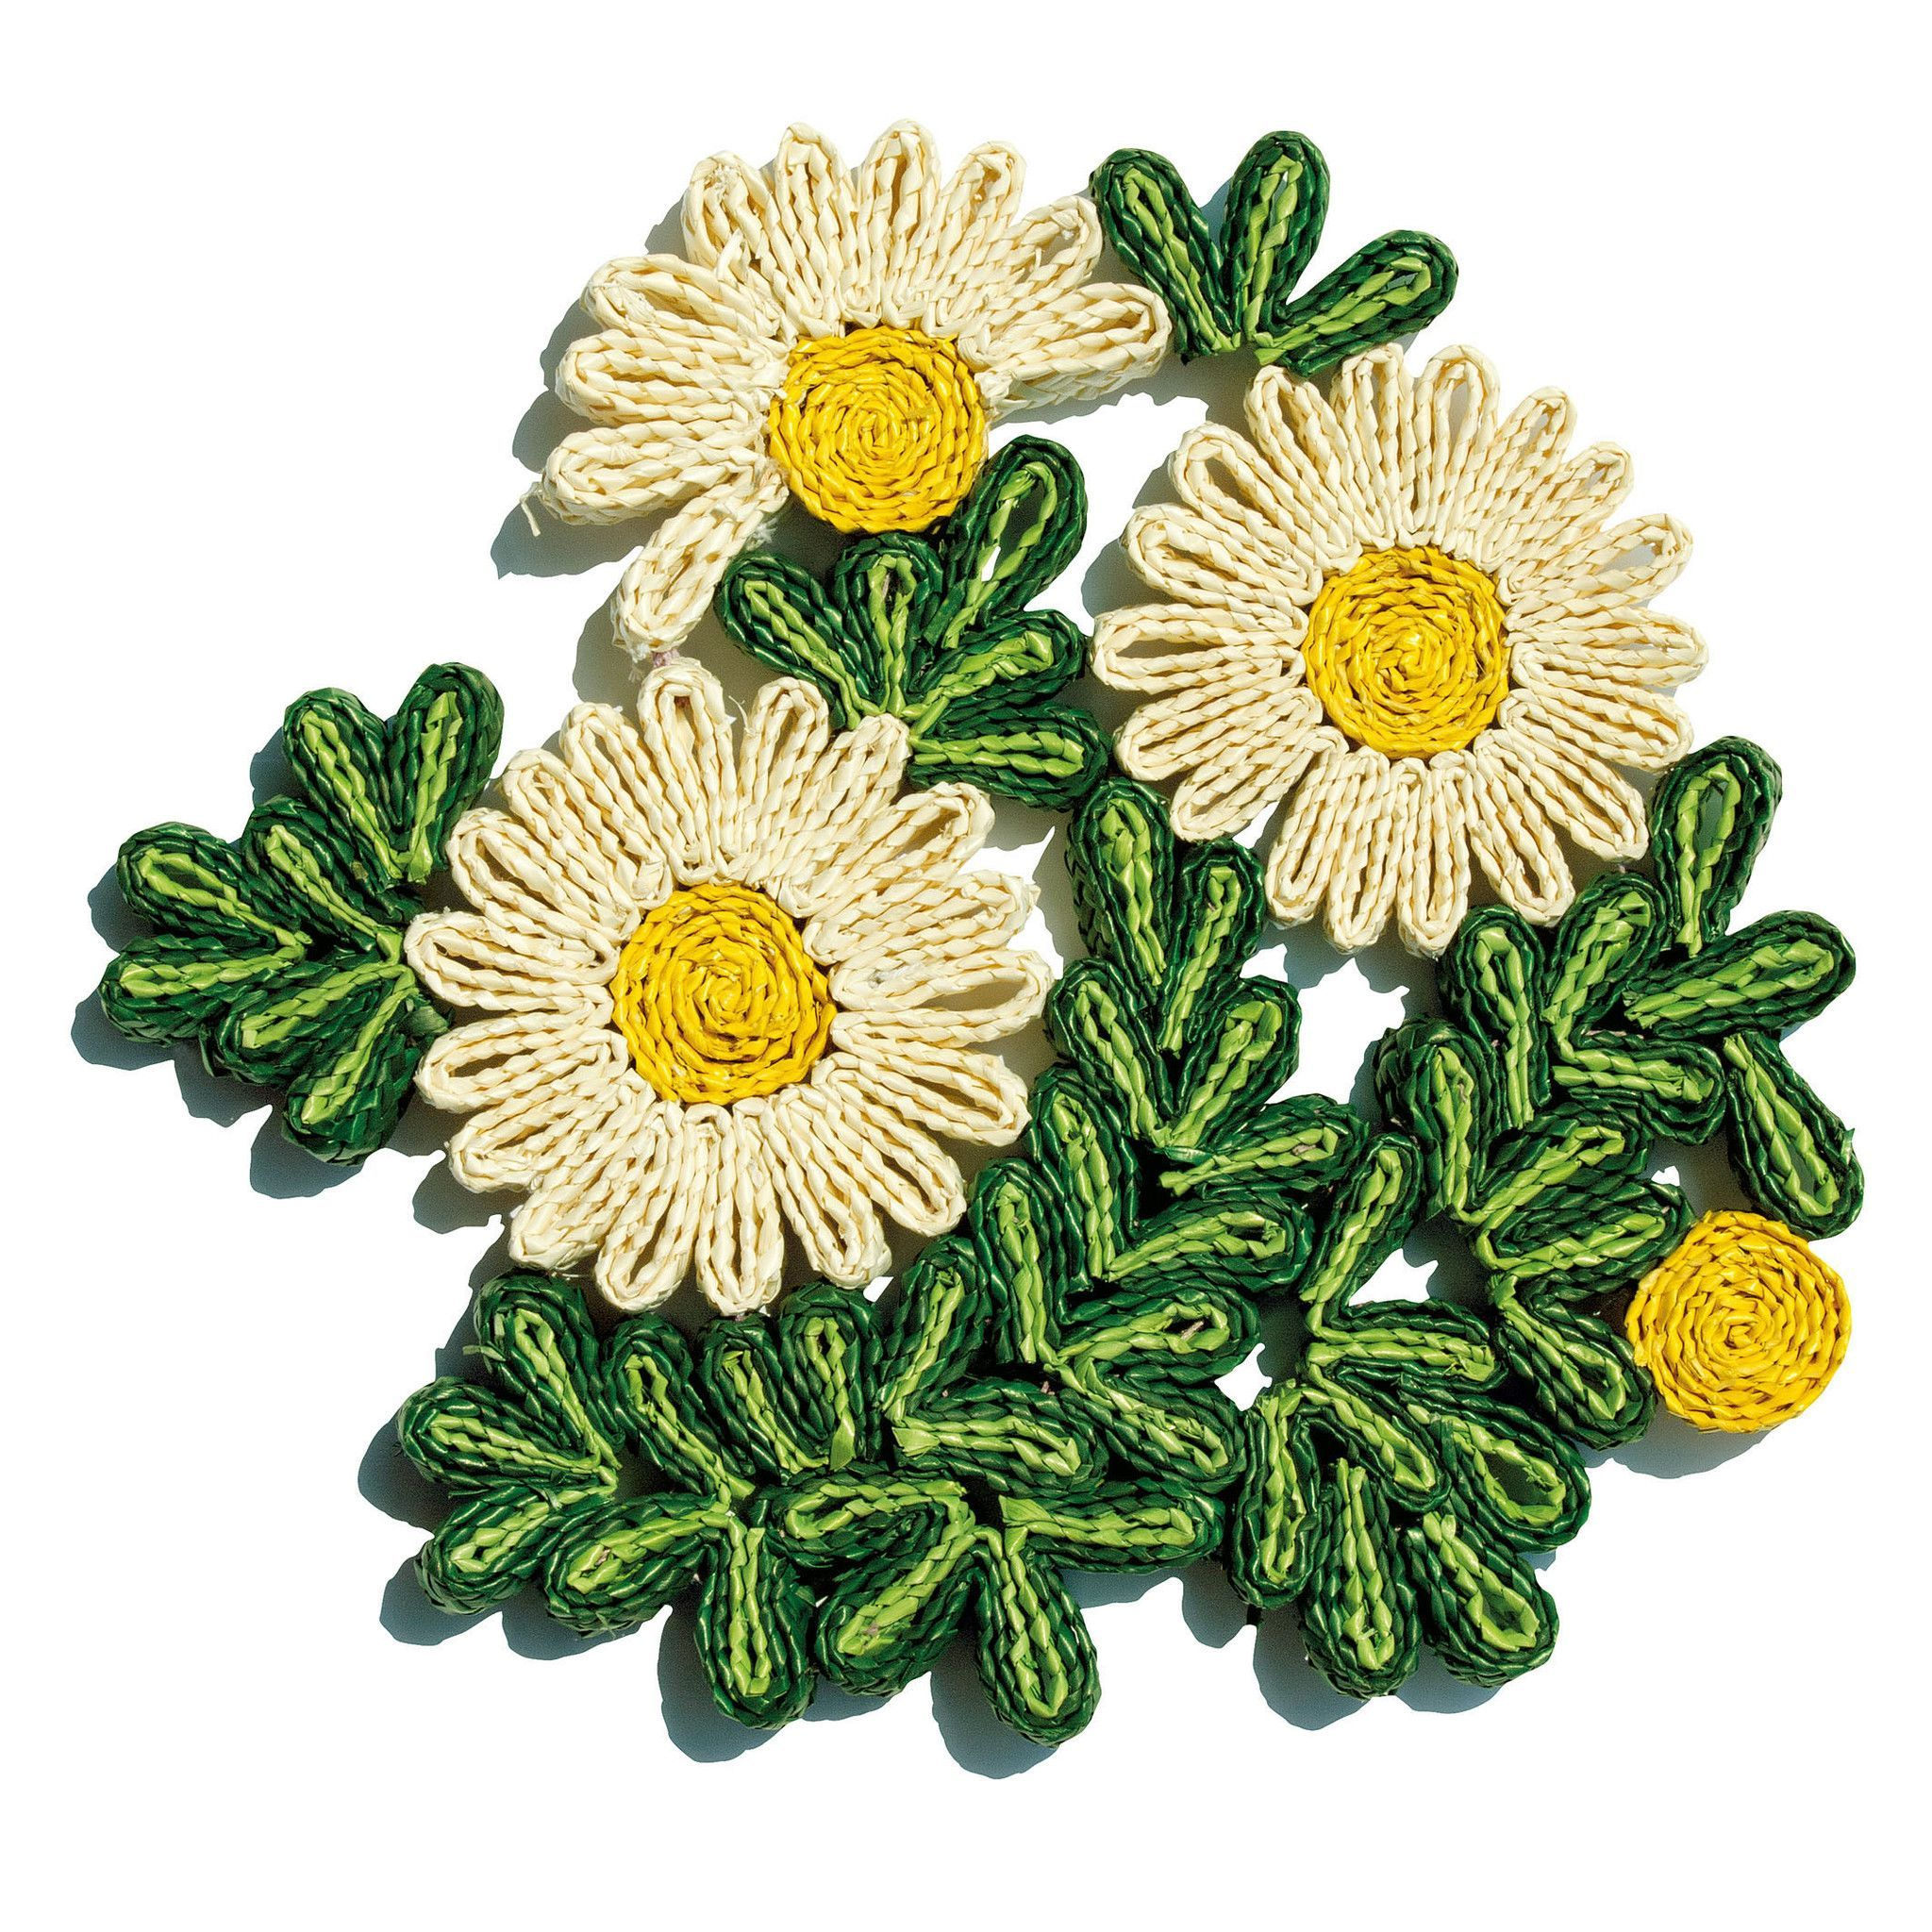 Florigraphie margherita straw pot holder design by seletti